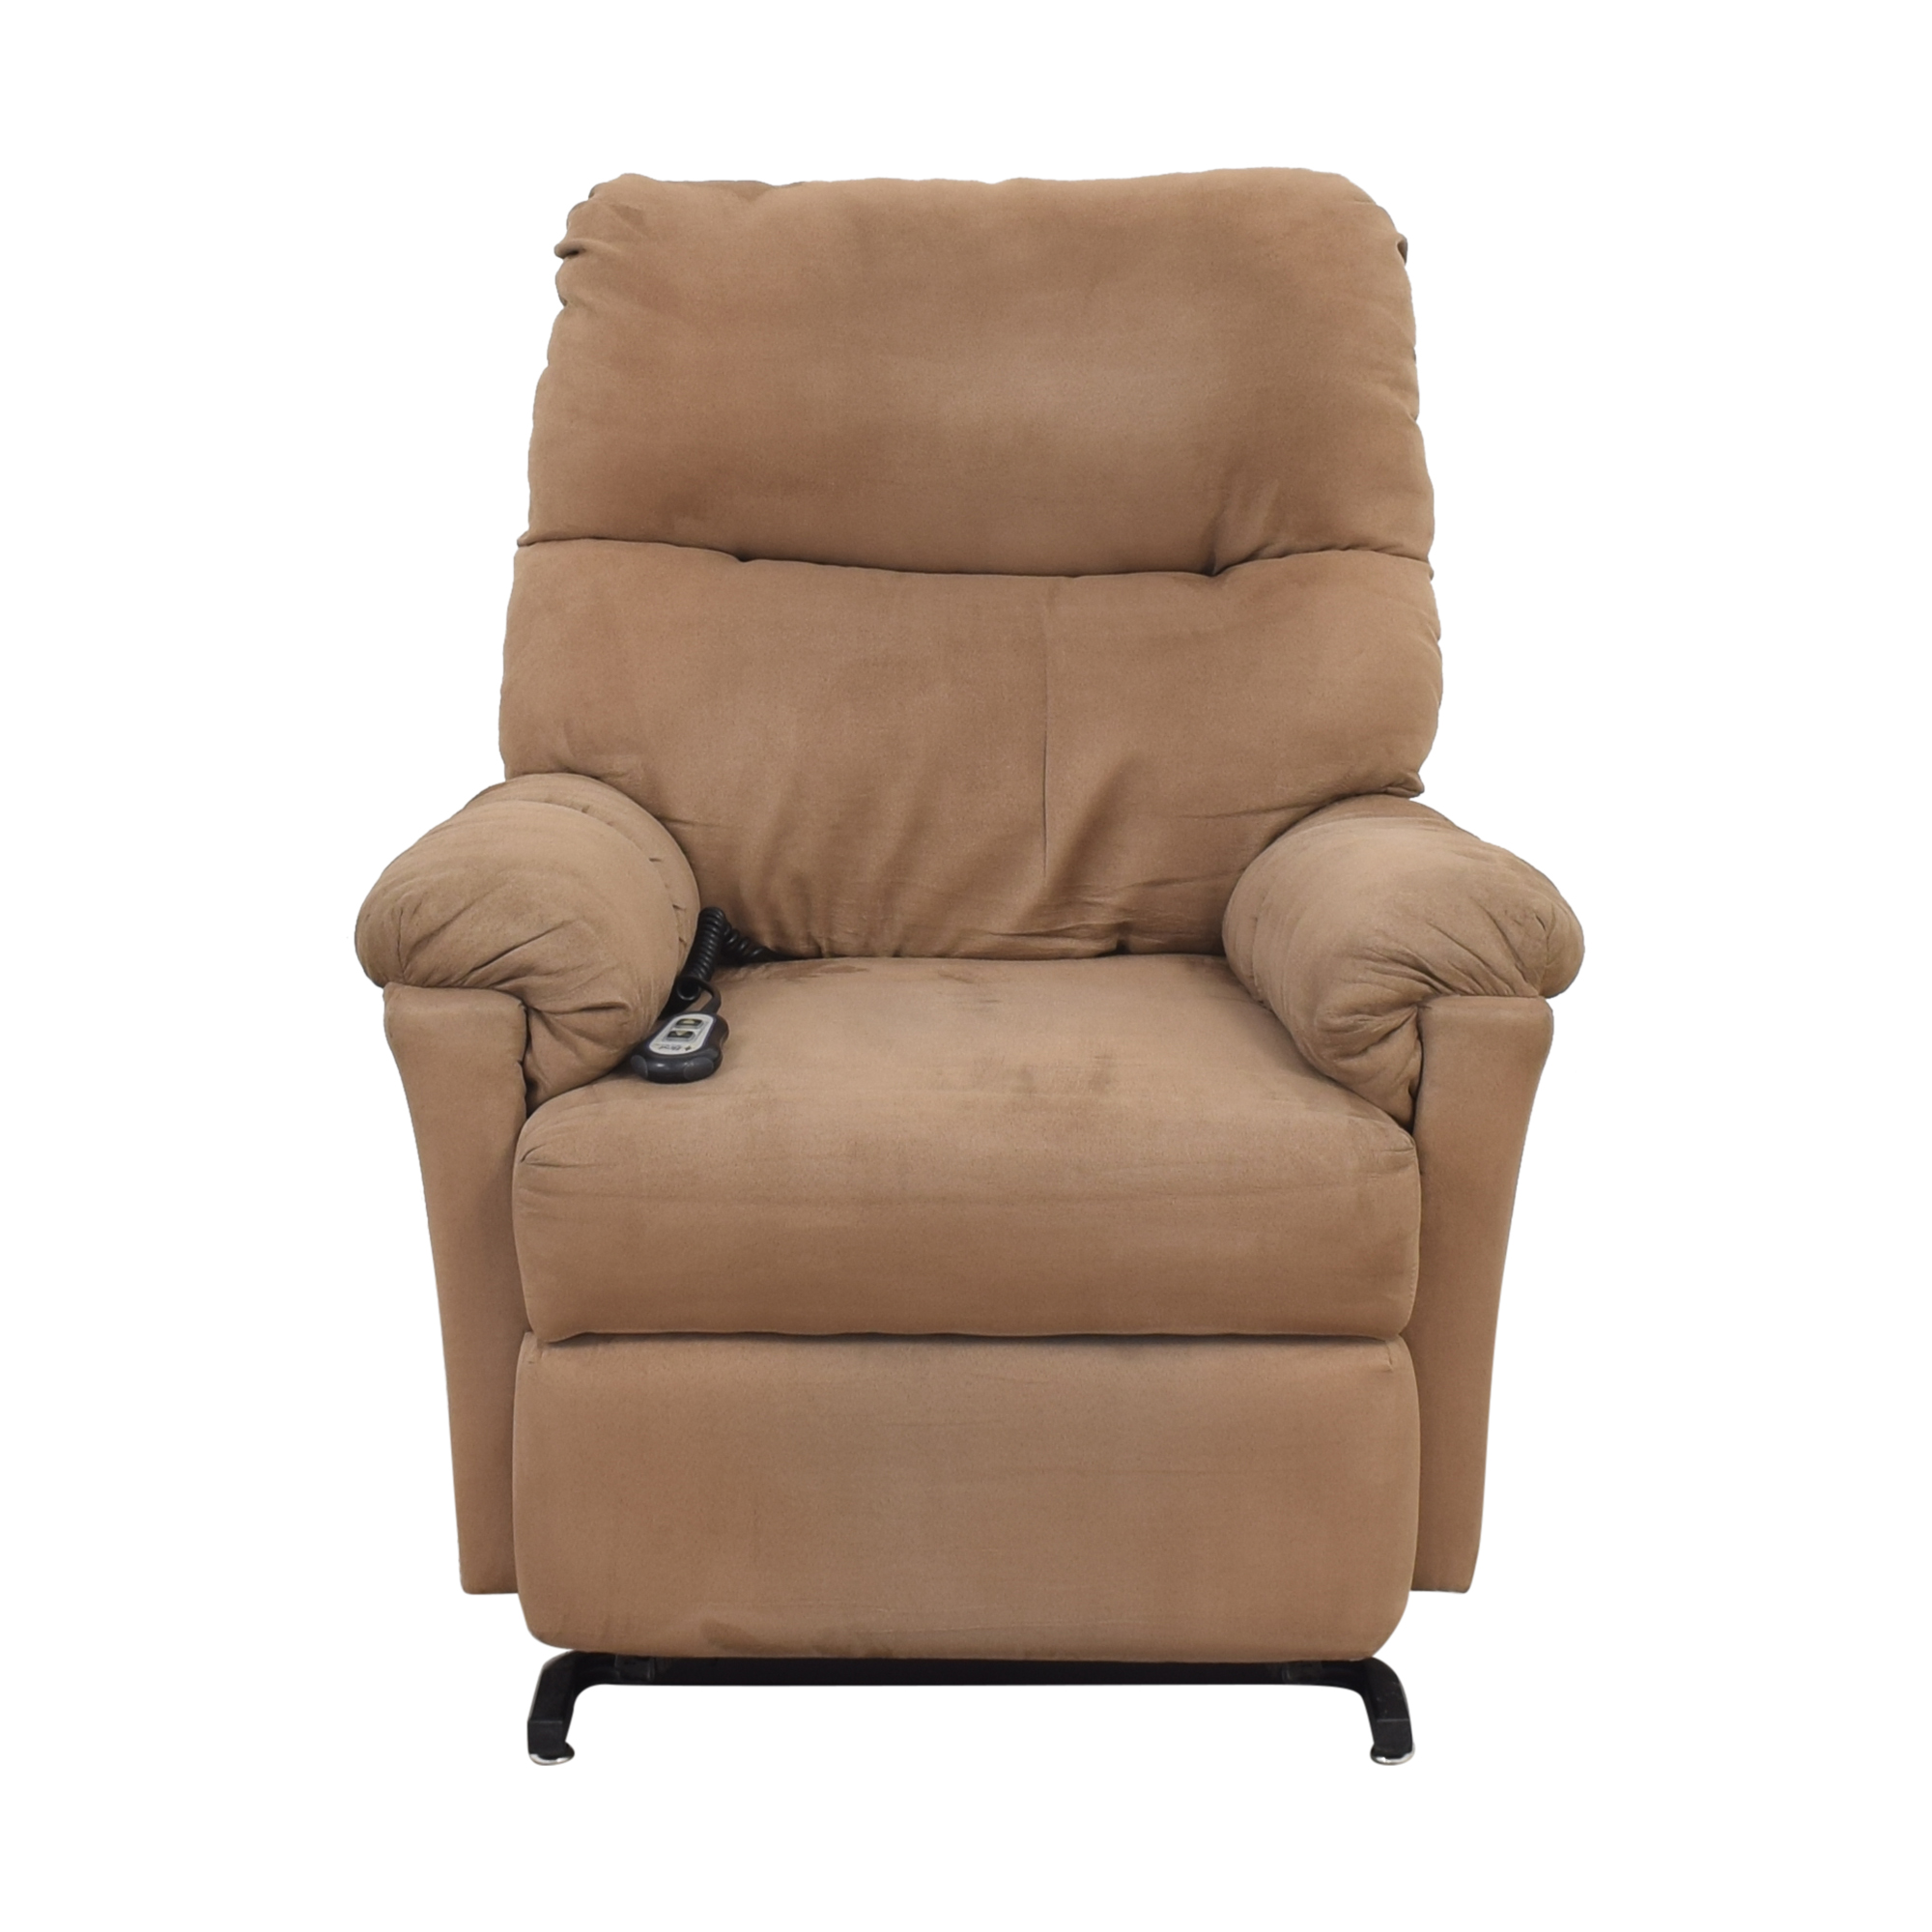 buy Best Chairs Recliner Best Chairs